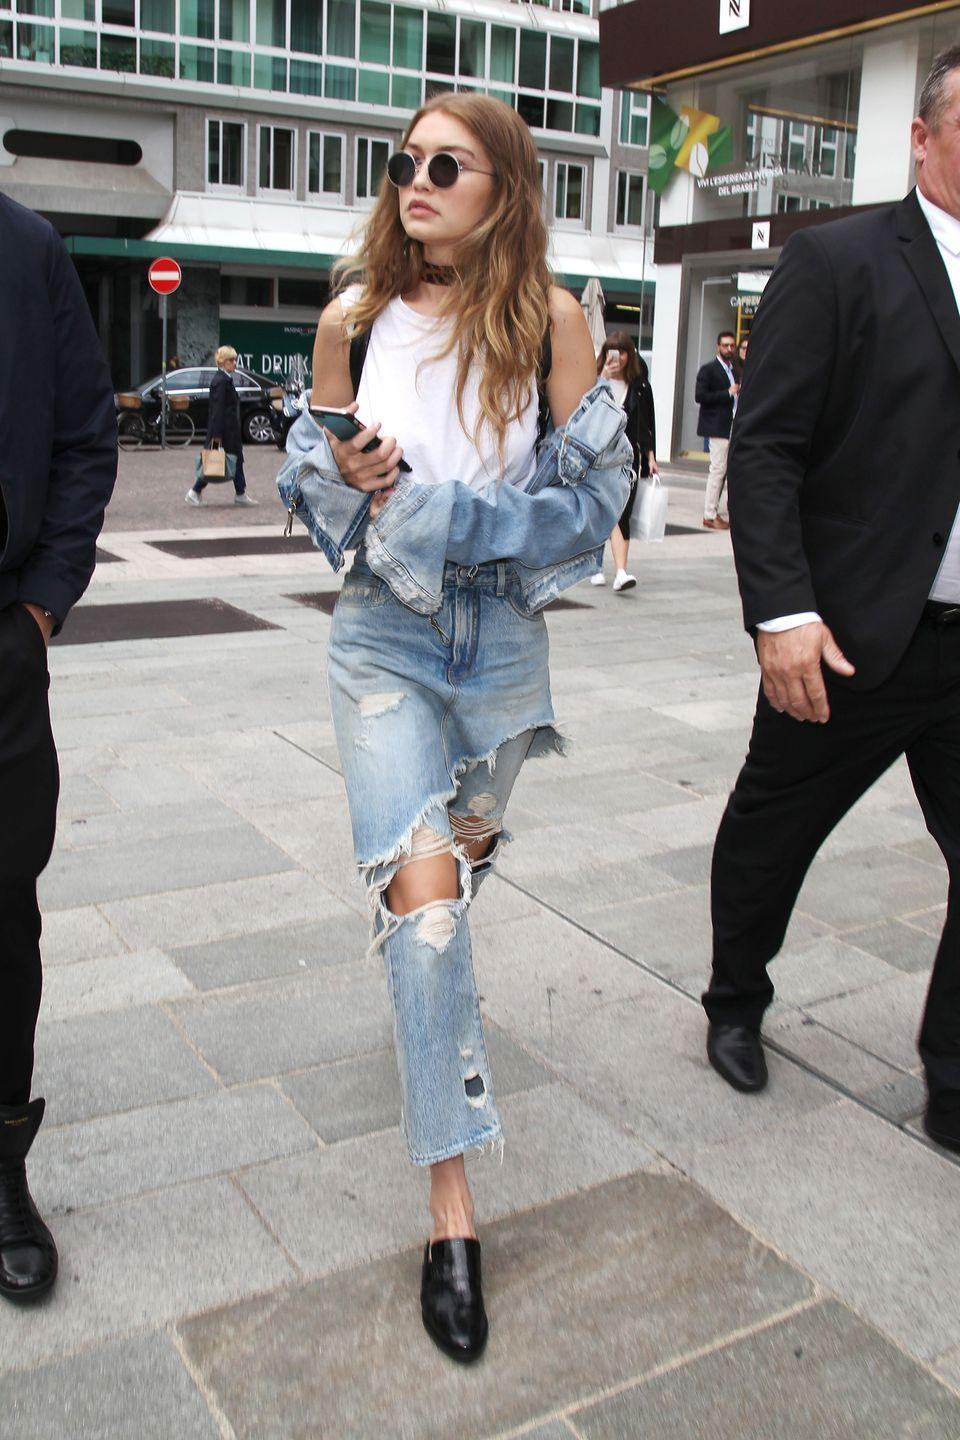 <p>In a RE/DONE | Hanes muscle tee, denim jacket, destroyed high-waisted jeans with layered fabric accents, black Freda Salvador mules, rounded sunglasses, a printed Frasier Sterling choker and a backpack.</p>